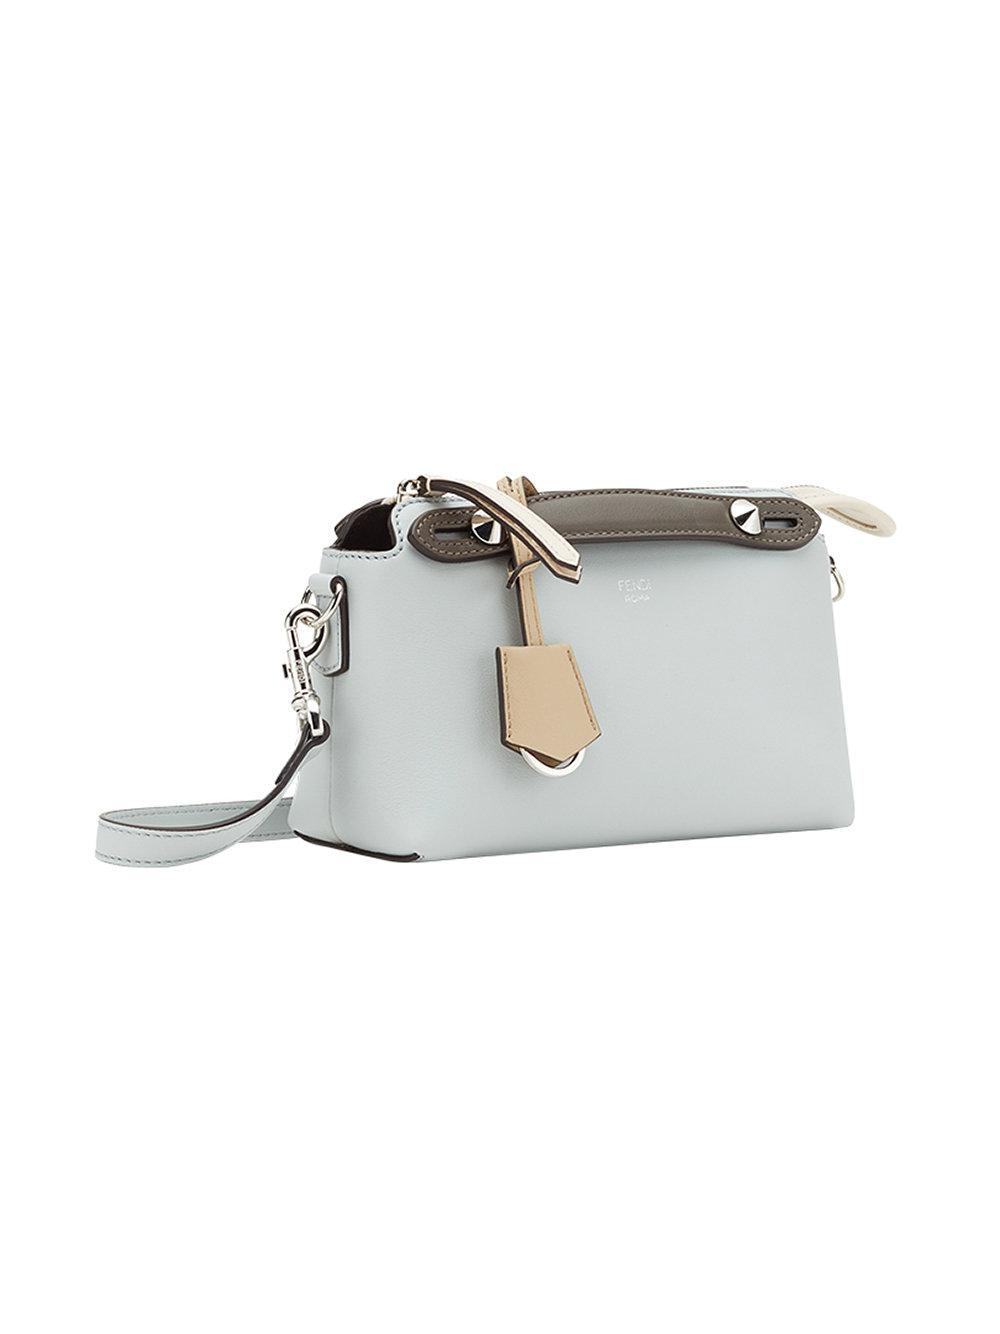 Fendi Leather Mini By The Way Tote in Grey (Grey)